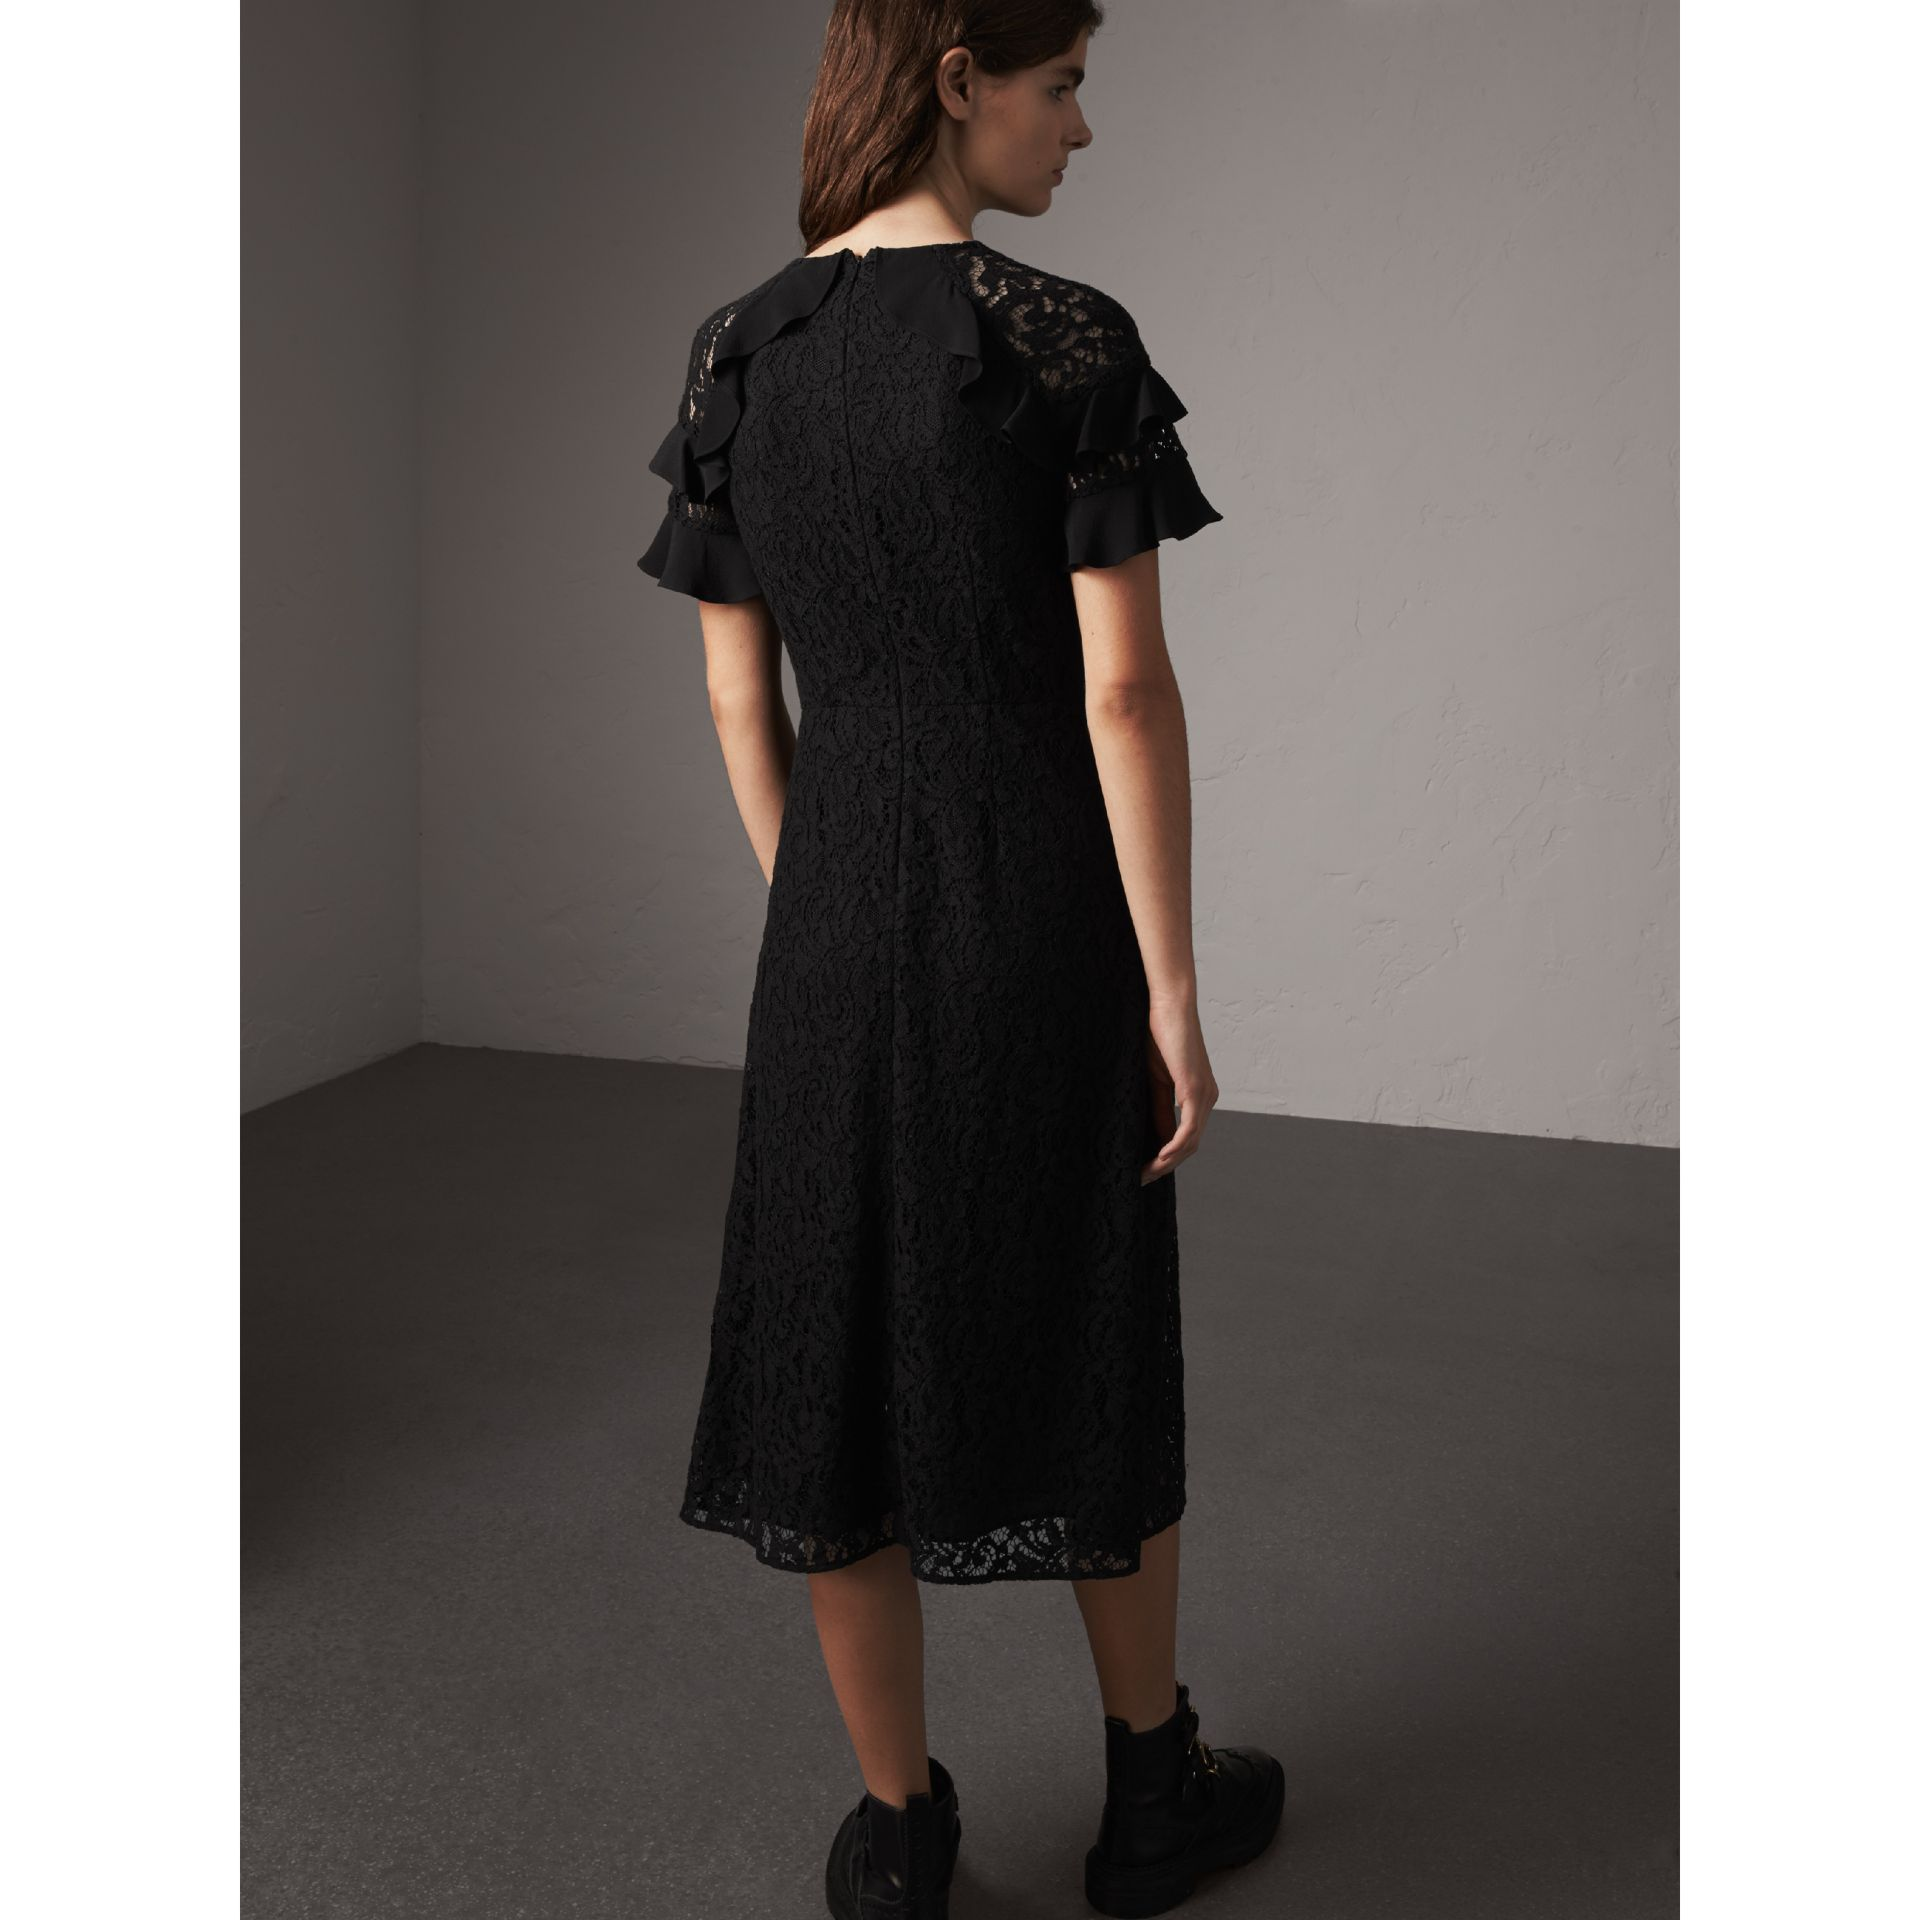 Ruffle Detail Floral Lace Dress in Black - Women | Burberry - gallery image 3